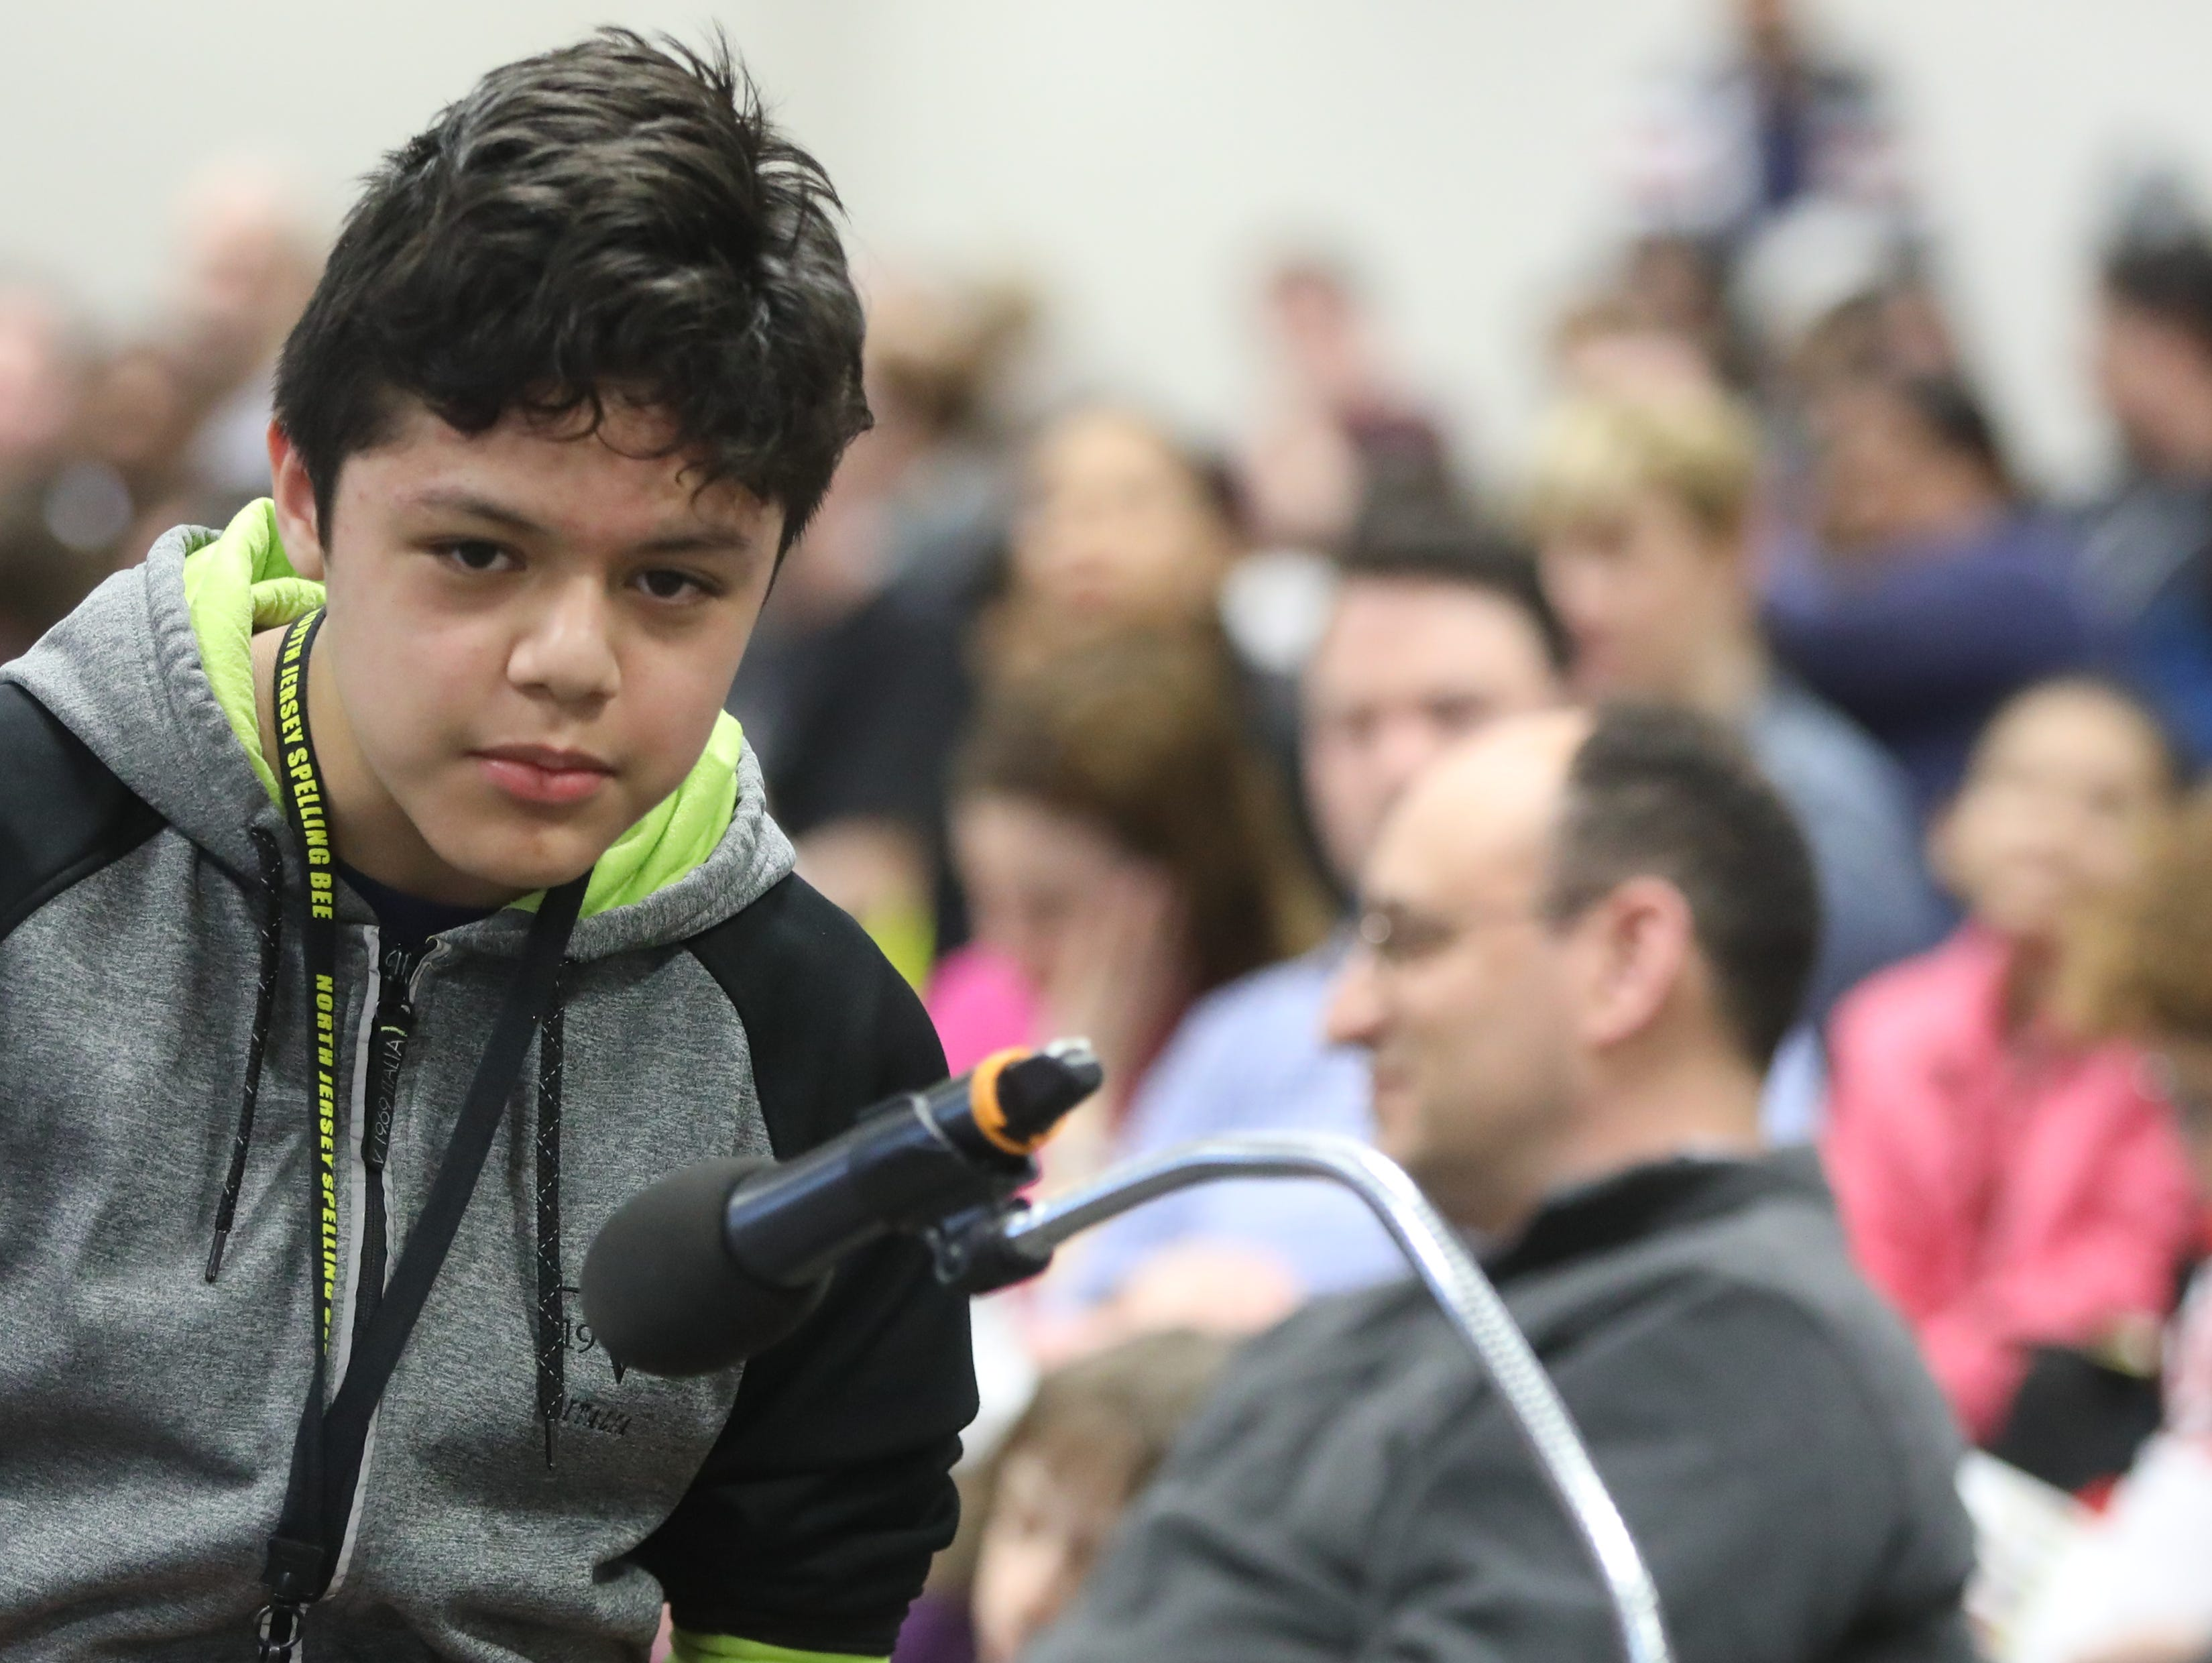 Jason Murillo, of Fairview, competes in the first round of the 2019 North Jersey Spelling Bee, in Paramus. Thursday, March 14, 2019